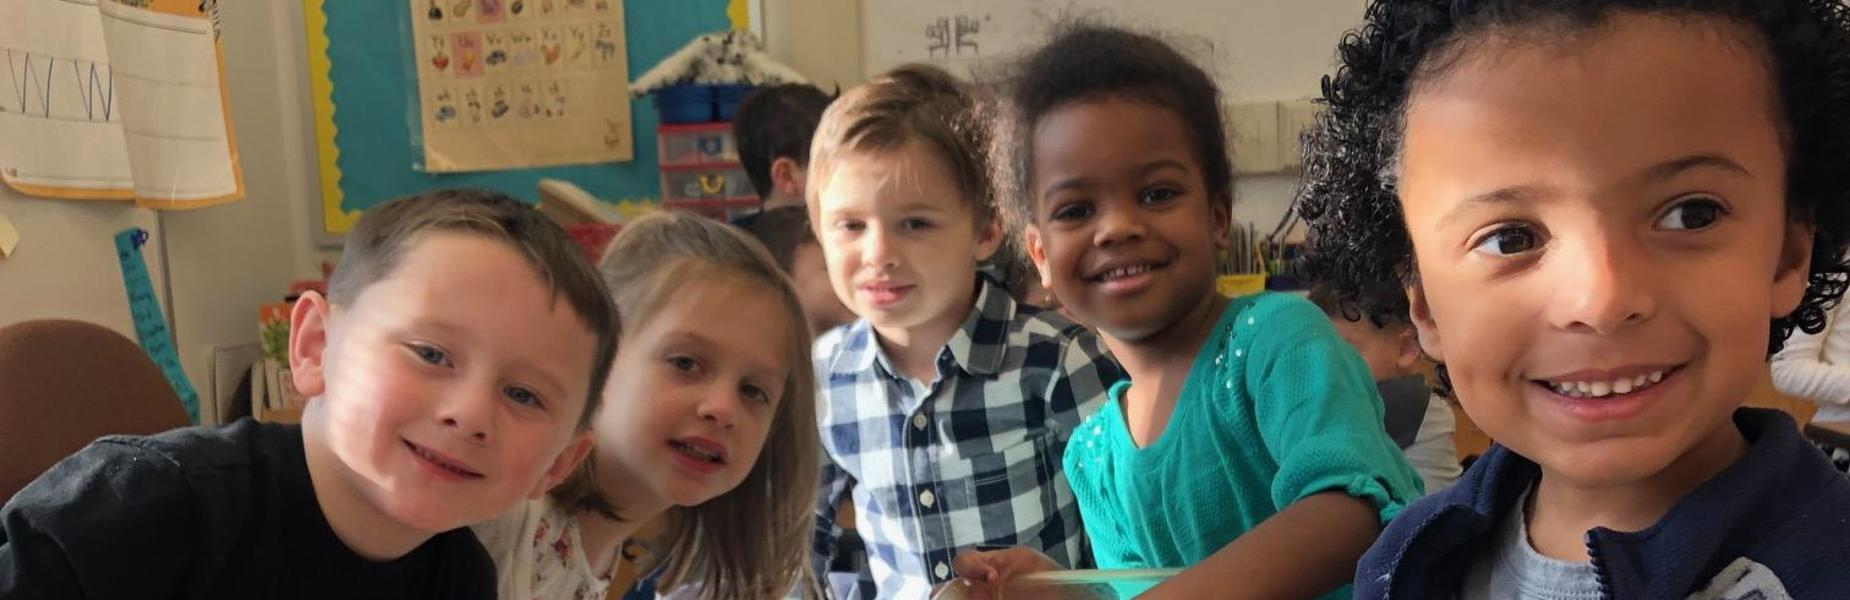 Kindergartners take a break from classroom activity to smile for the camera.